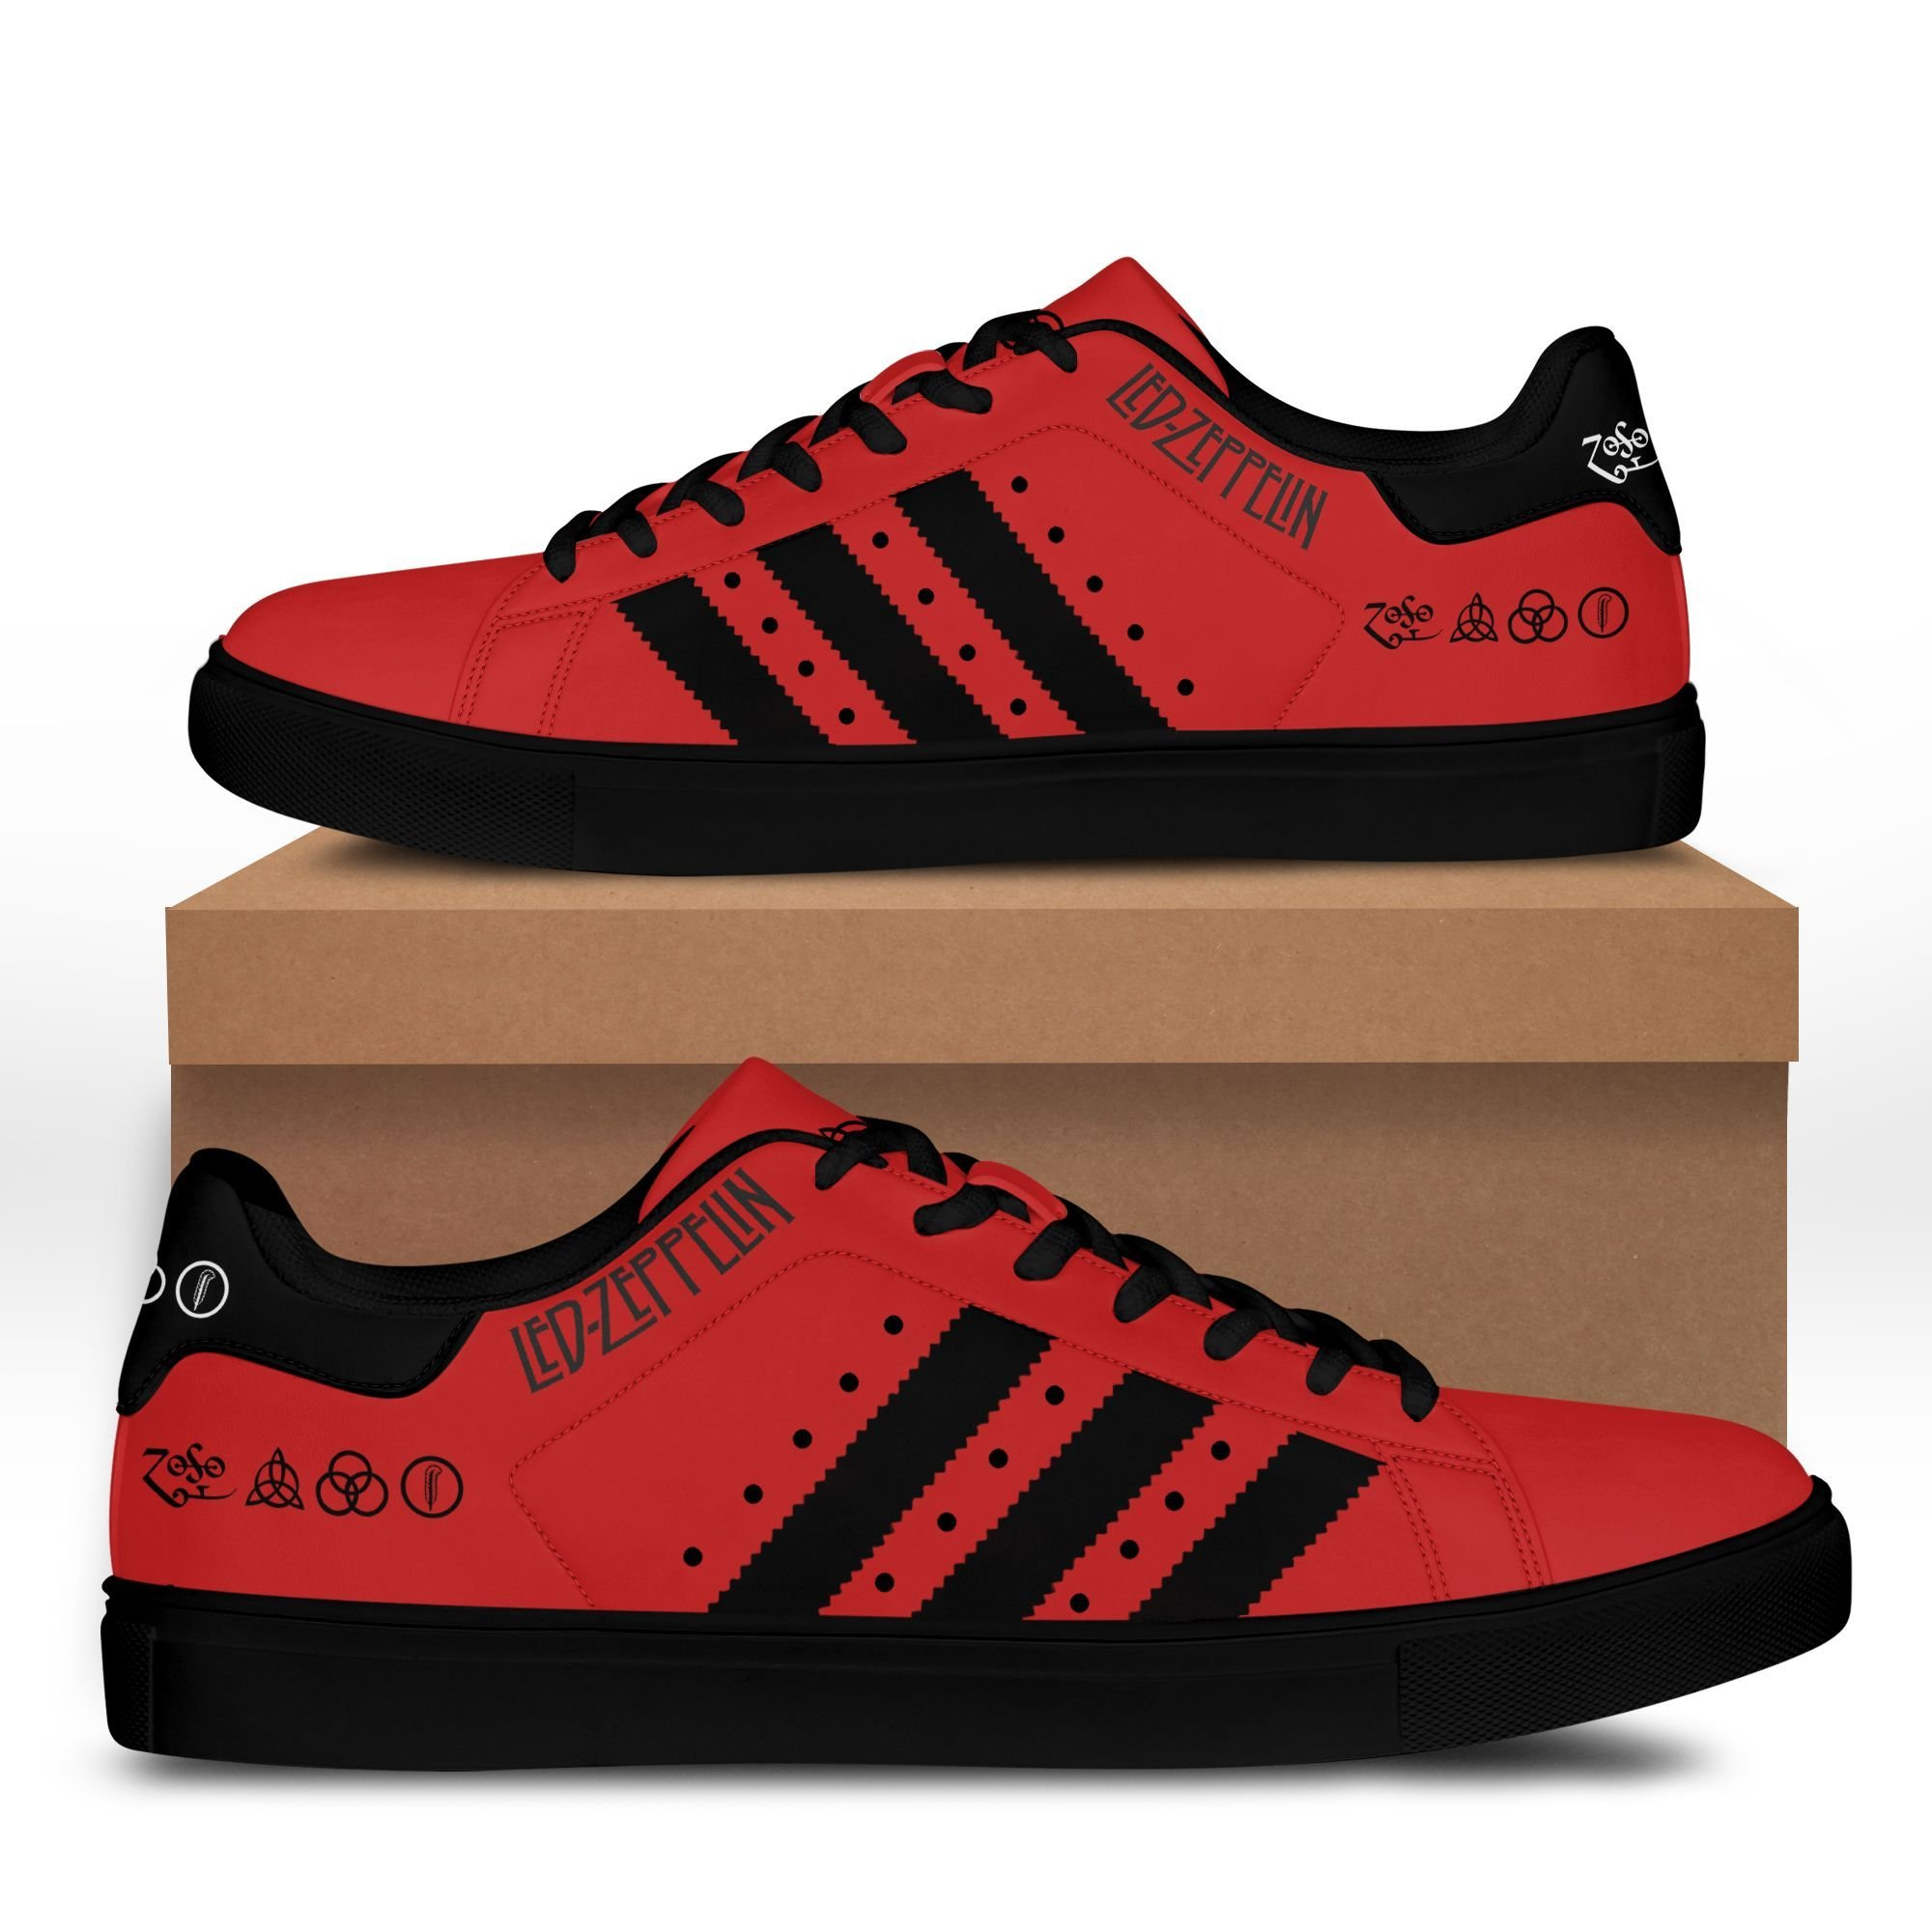 Led zeppelin red version Stan Smith Shoes